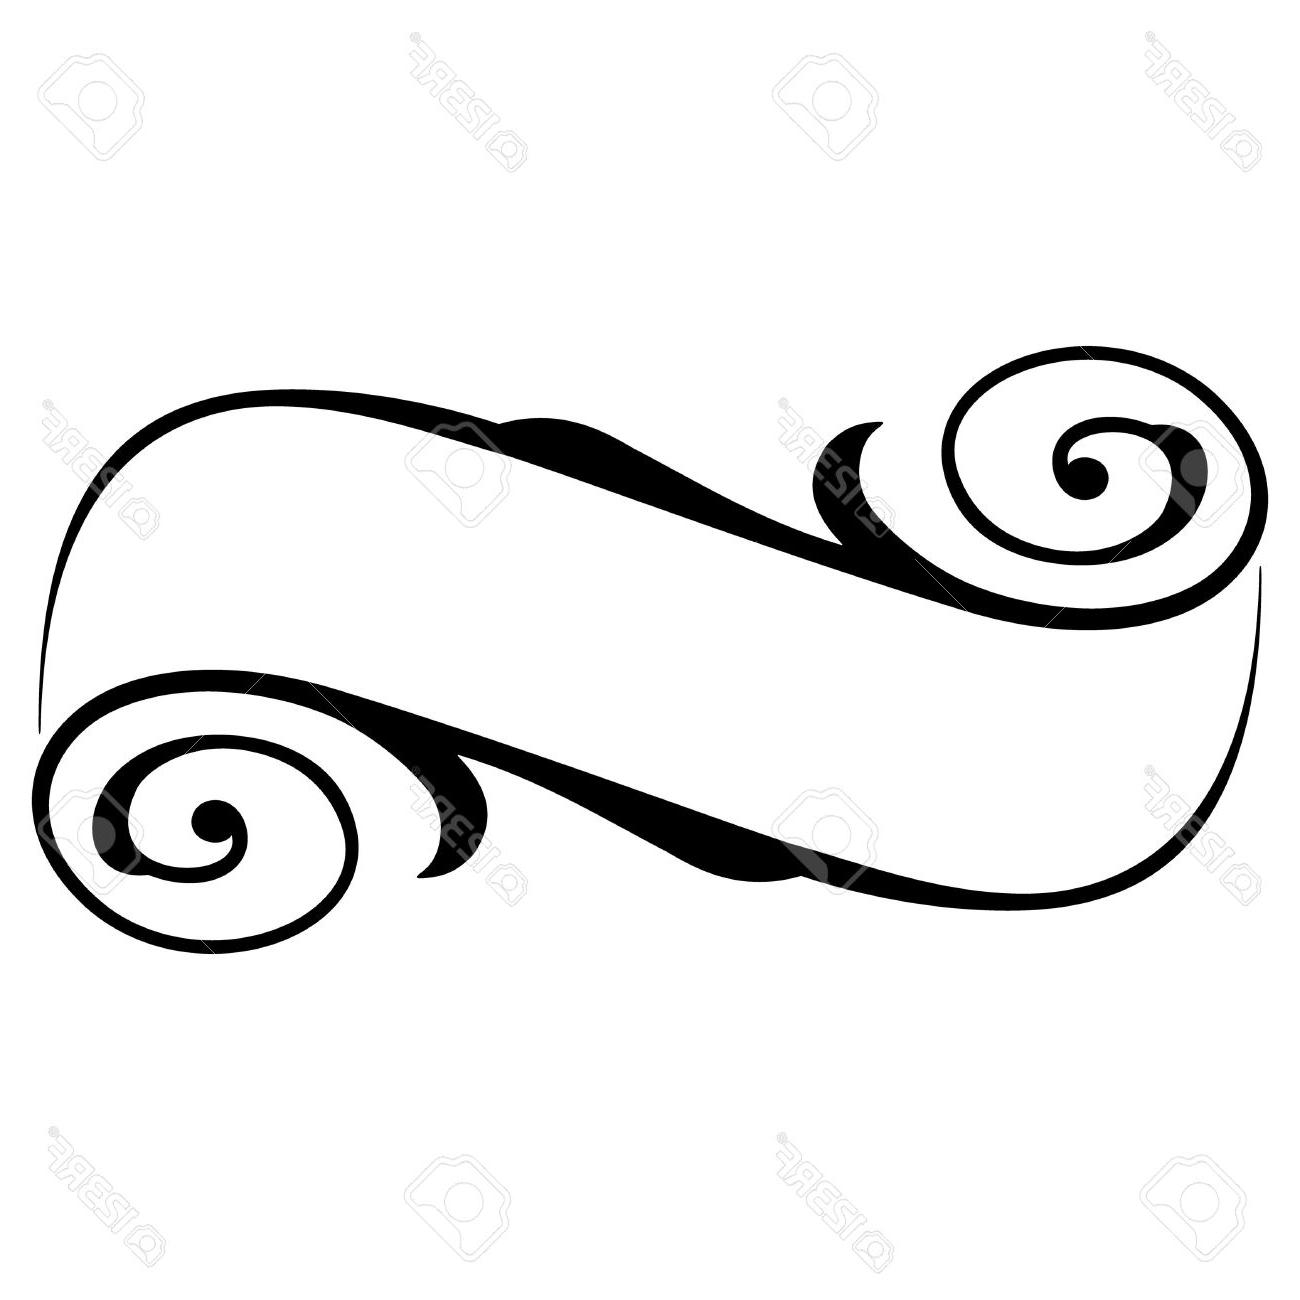 1300x1300 Unique Calligraphy Ribbon Black And White Banner Clipart Vector